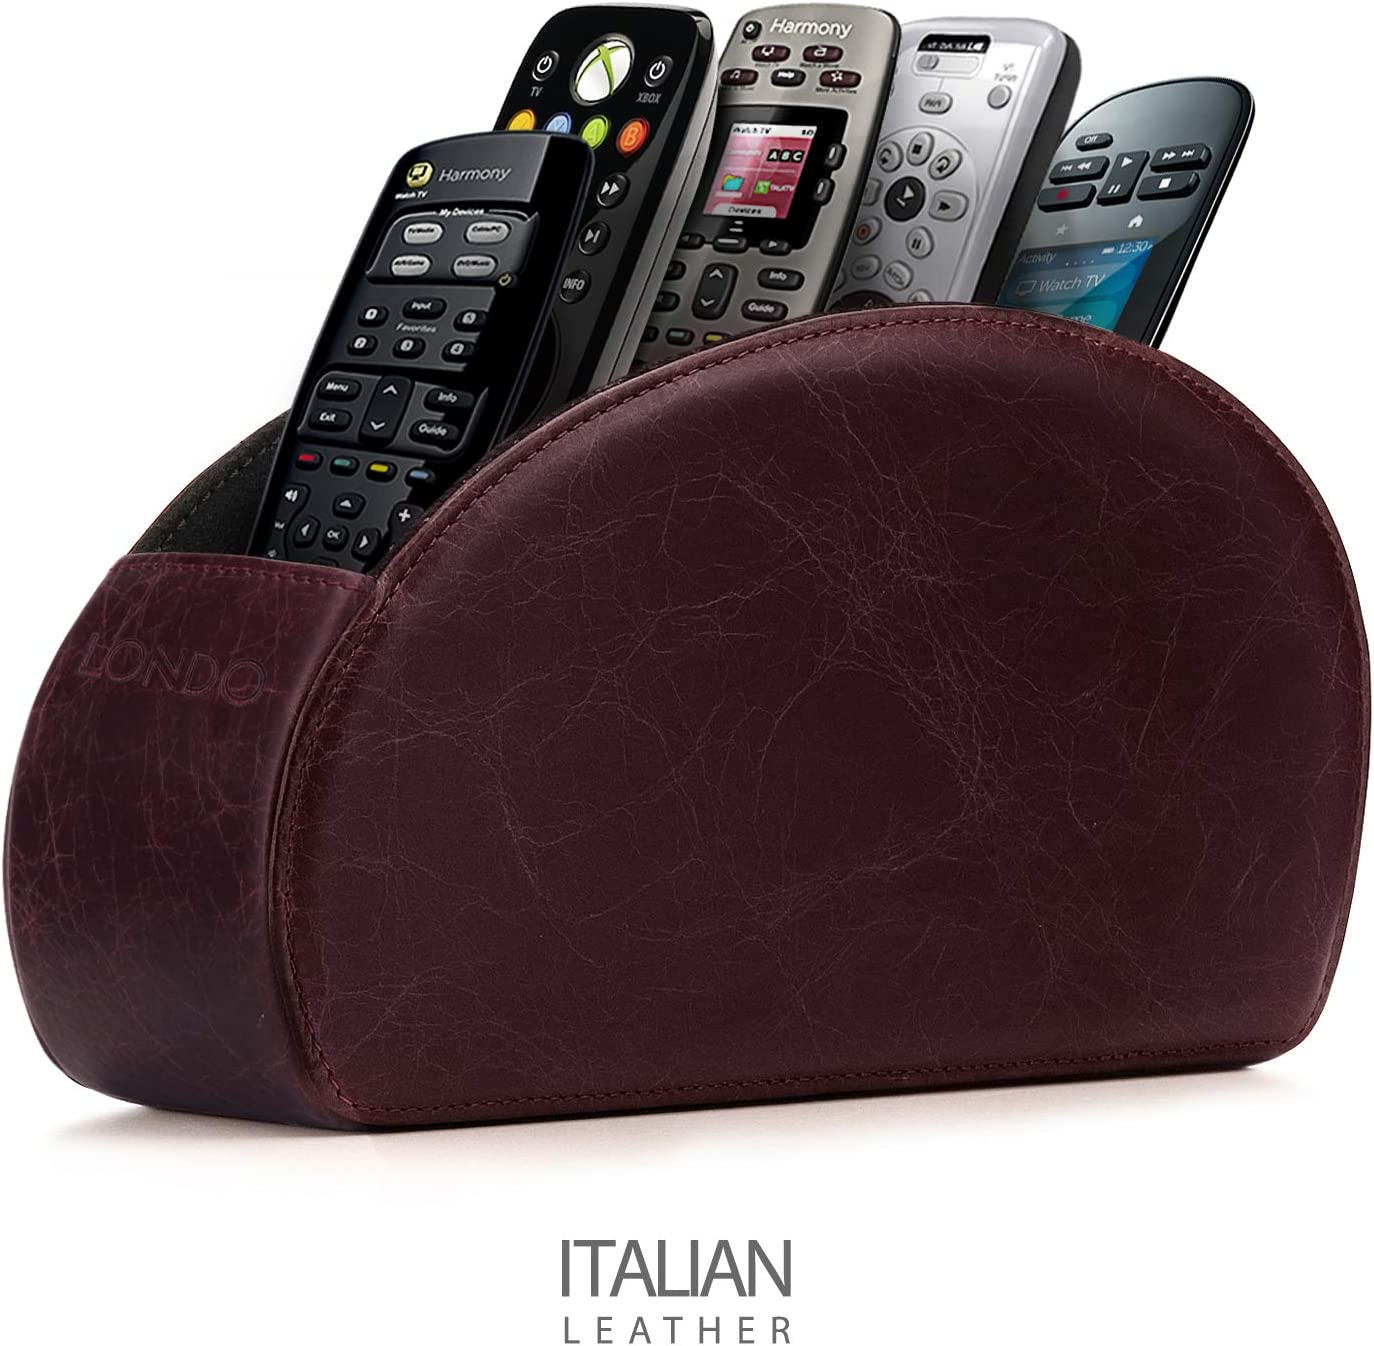 Londo Remote Controller Holder Organizer Store DVD Blu-ray TV Roku or Apple TV Remotes - Italian Genuine Leather with Suede Lining Living or Bedroom Storage – Damson